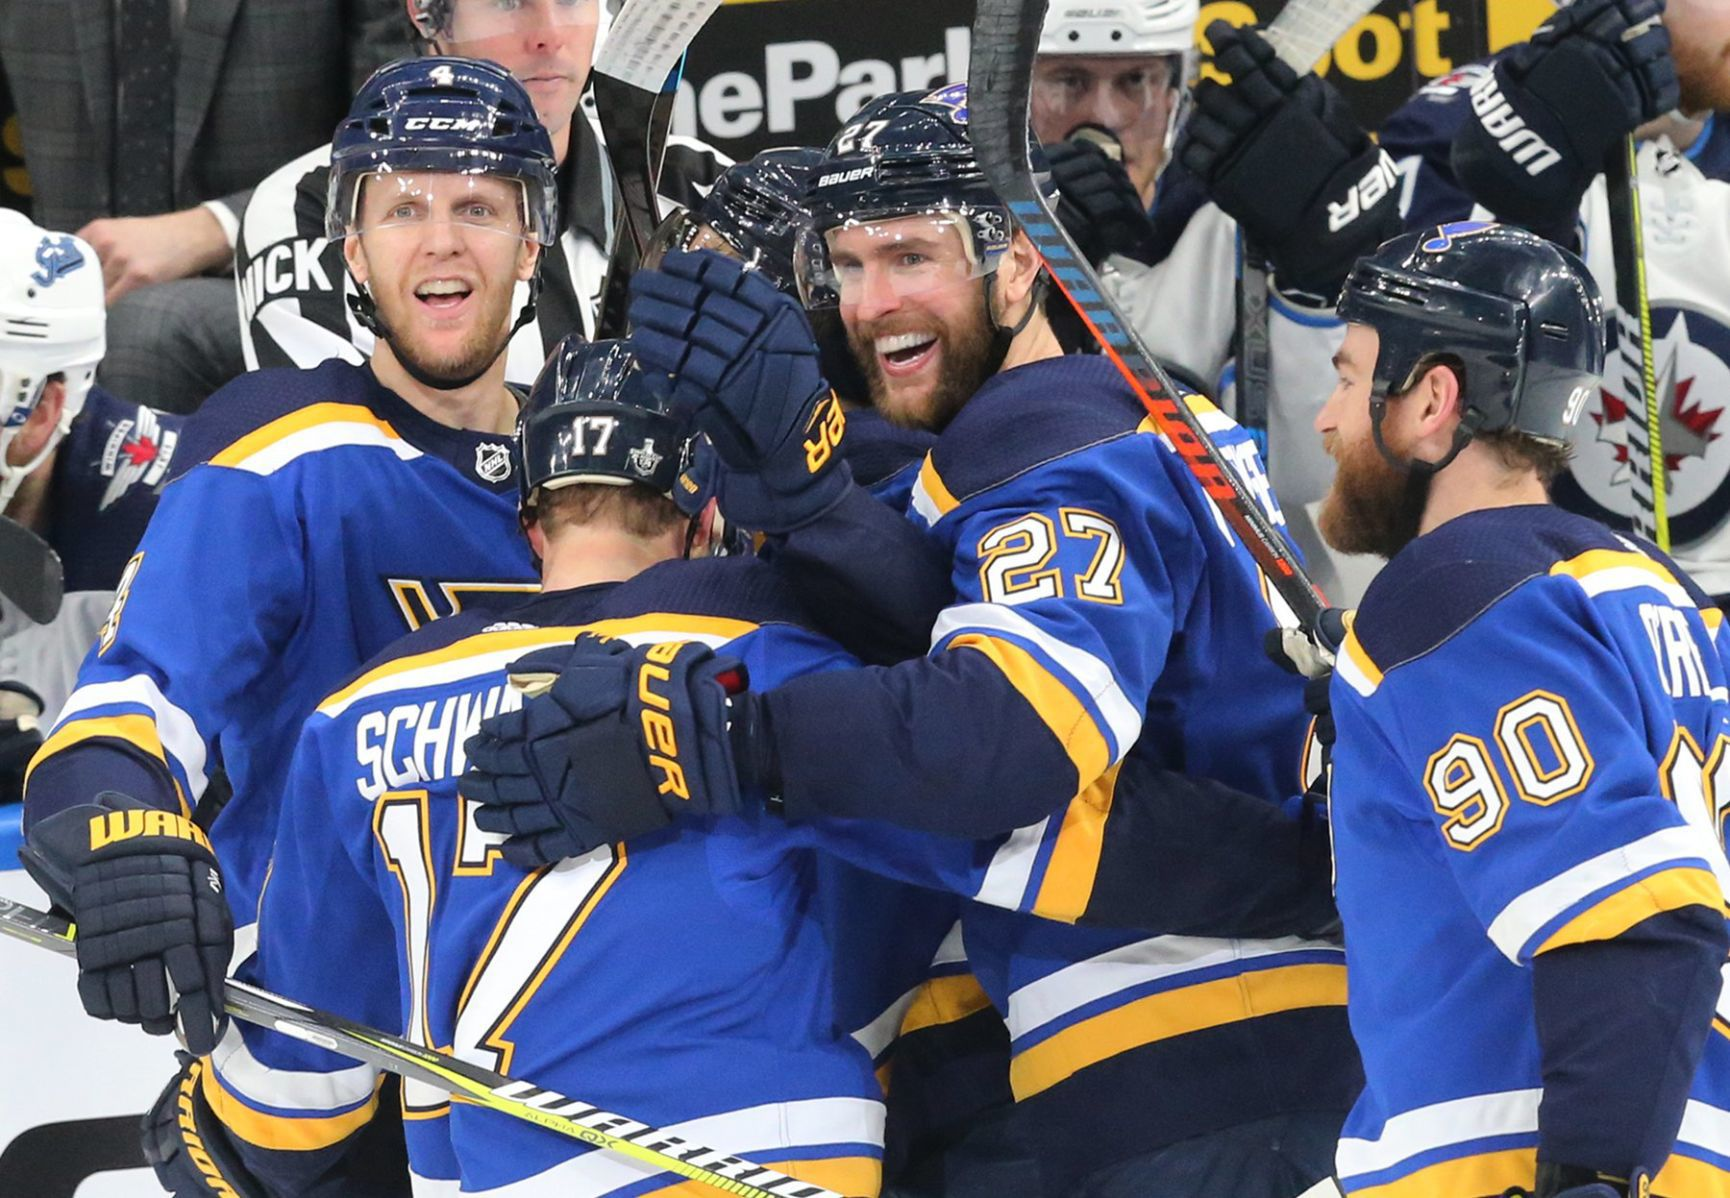 Hat-trick clincher: Blues eliminate Jets to advance